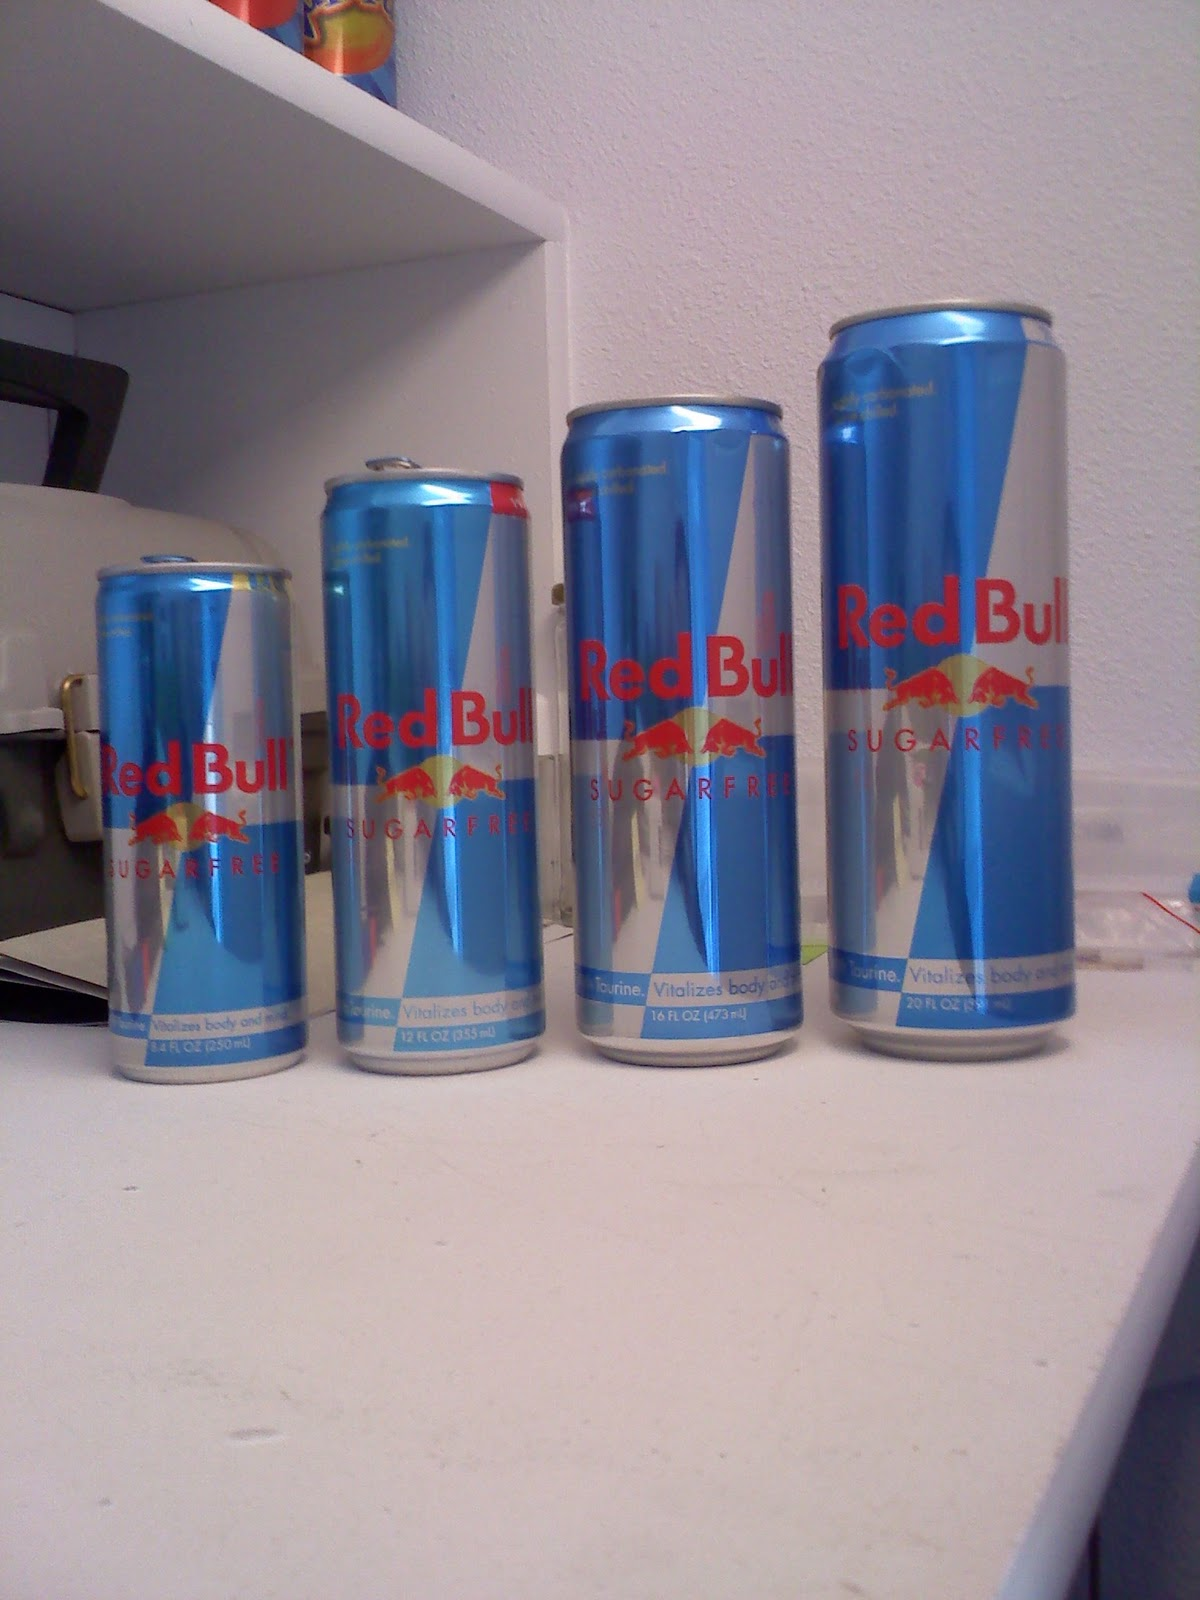 caffeine review for red bull sugar free. Black Bedroom Furniture Sets. Home Design Ideas